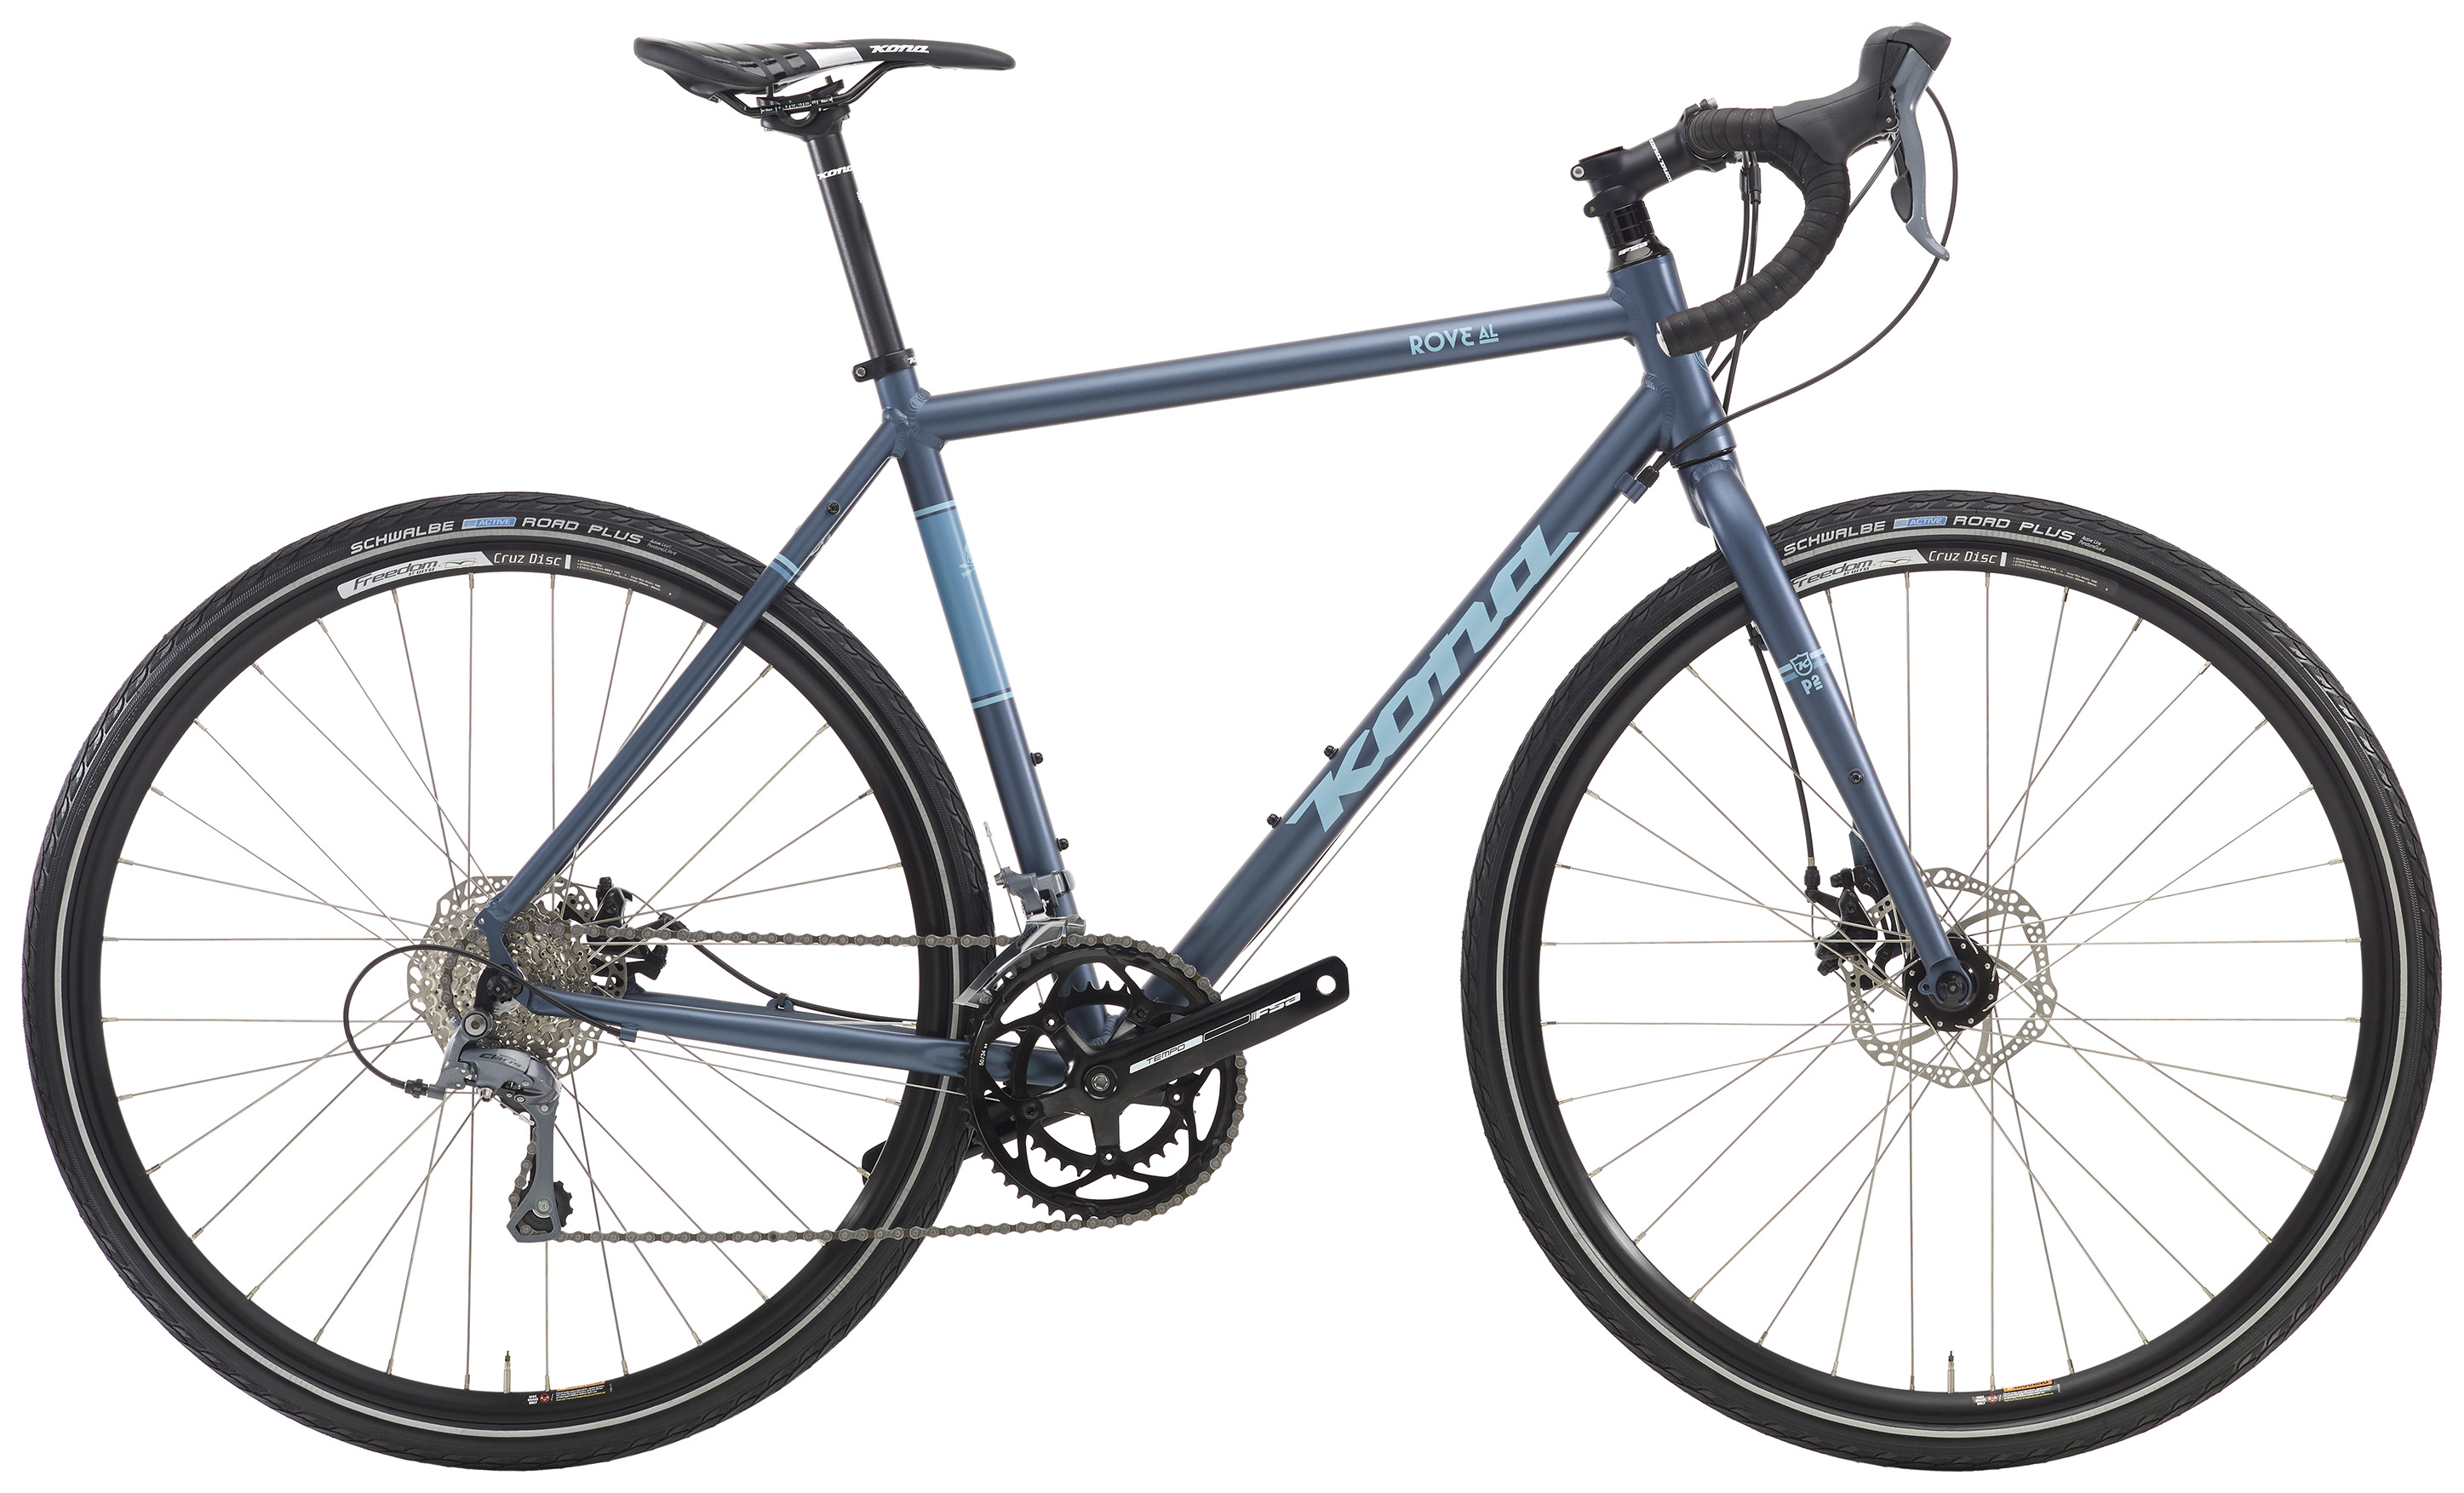 The Best 2016 Road Bikes You Can Buy for Under $1,000